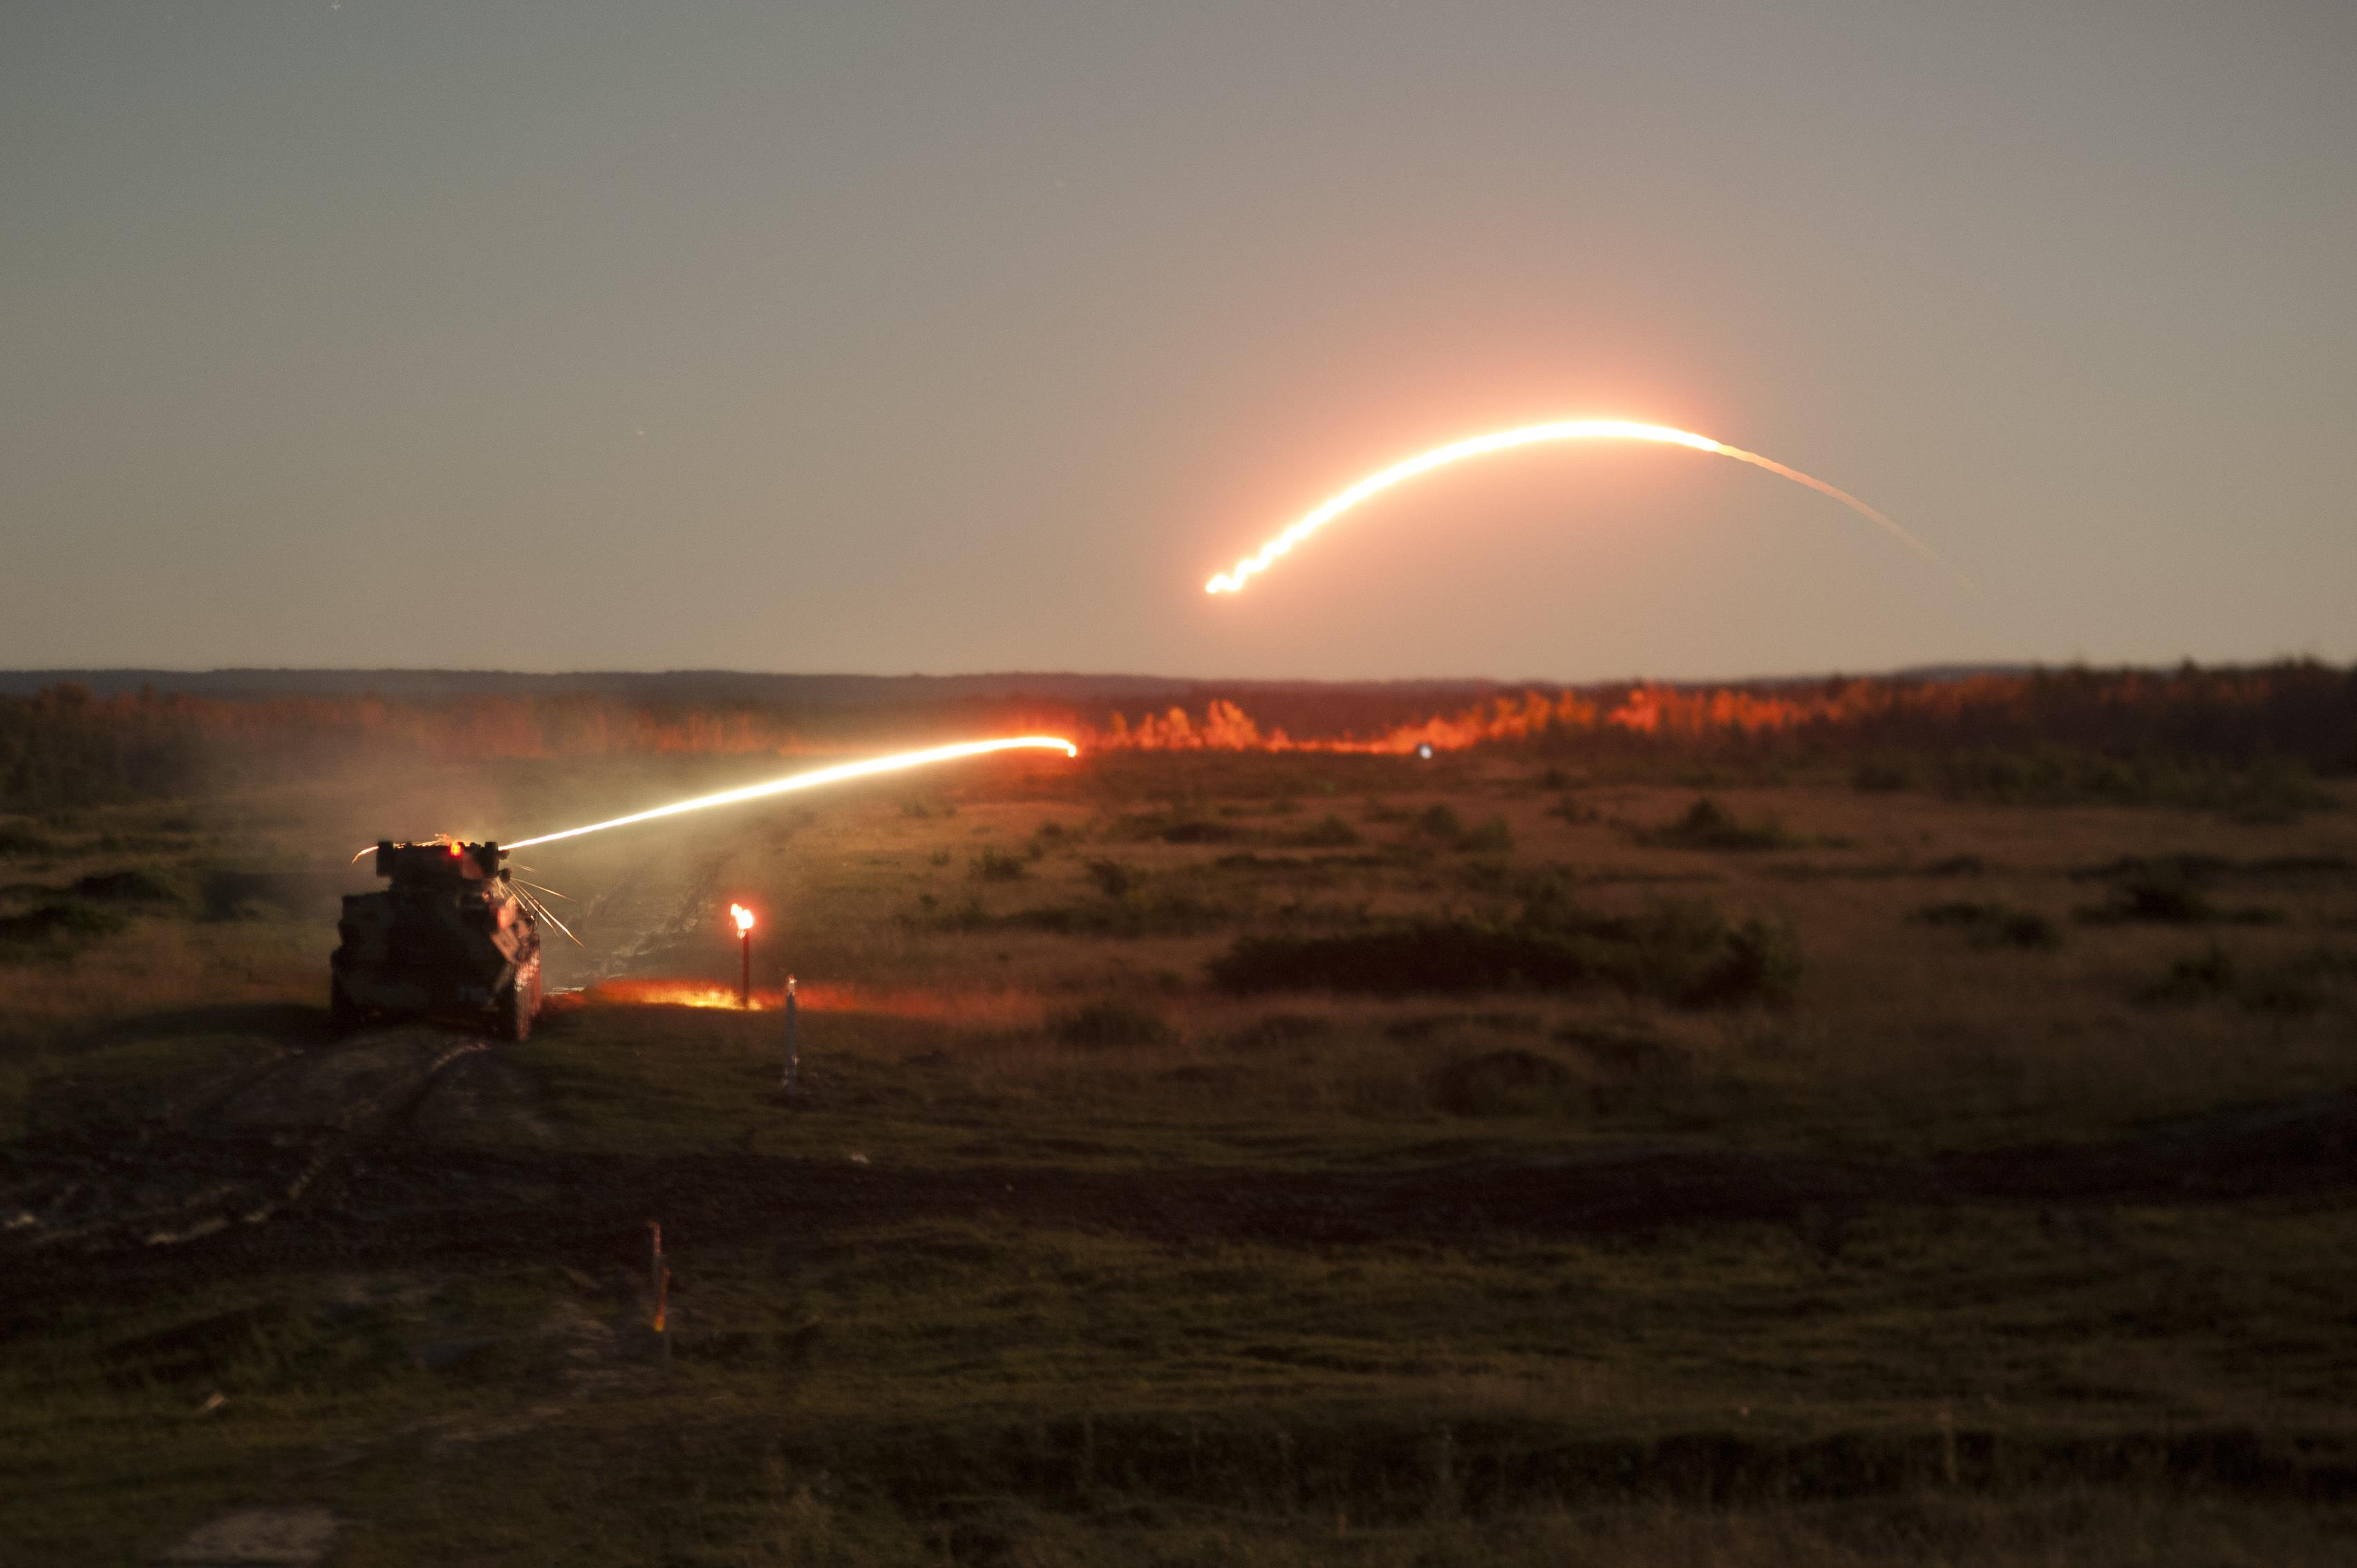 BTRs engage targets after dark at Yavoriv CTC